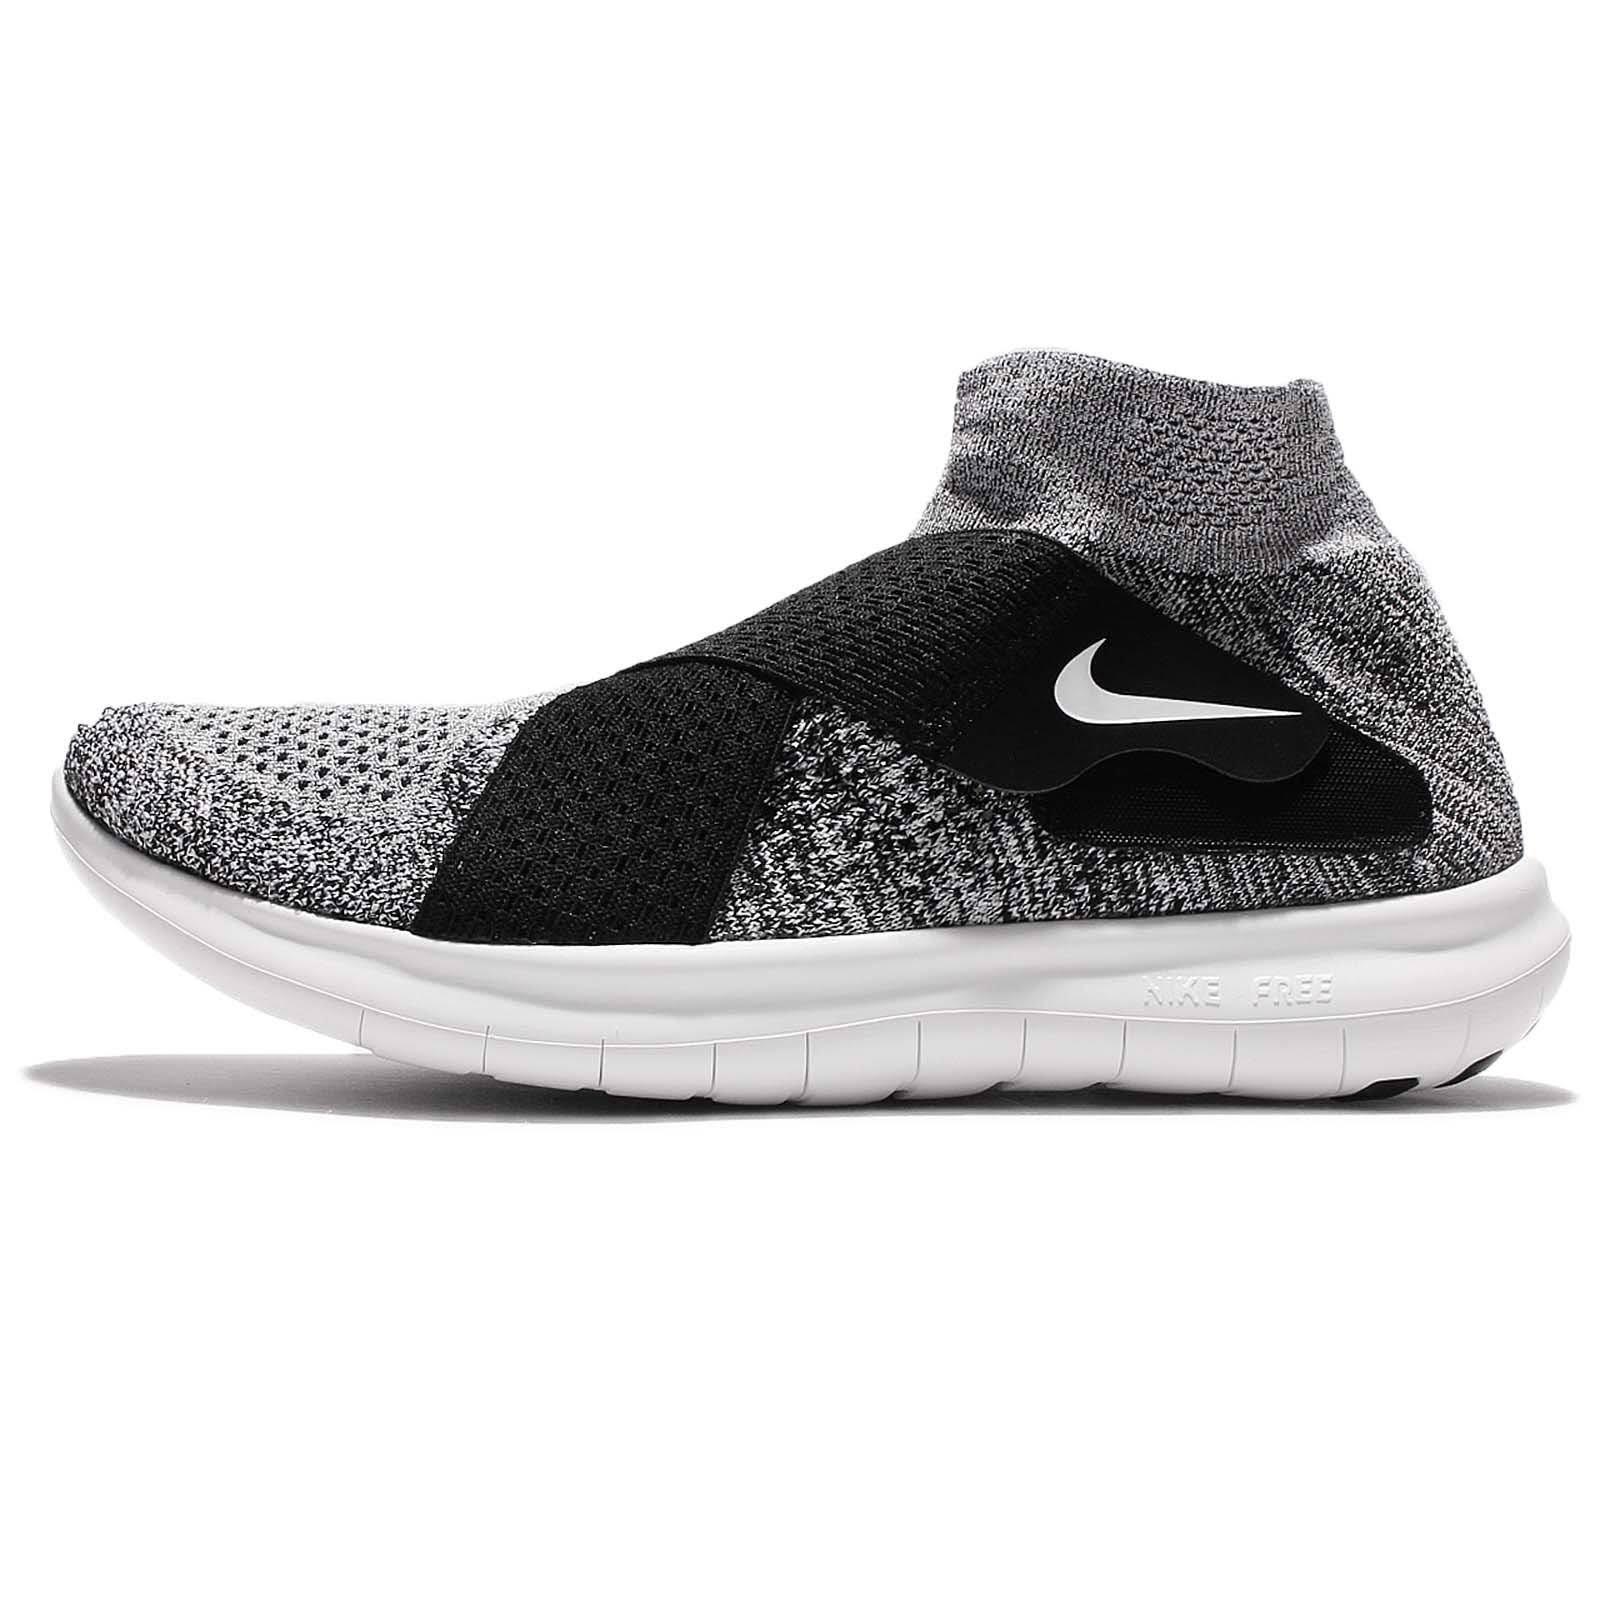 Course Homme Flyknit De Nike Pour 7 2017 Chaussures Rn Free Taille 880845001 Motion CBw1zxR0q